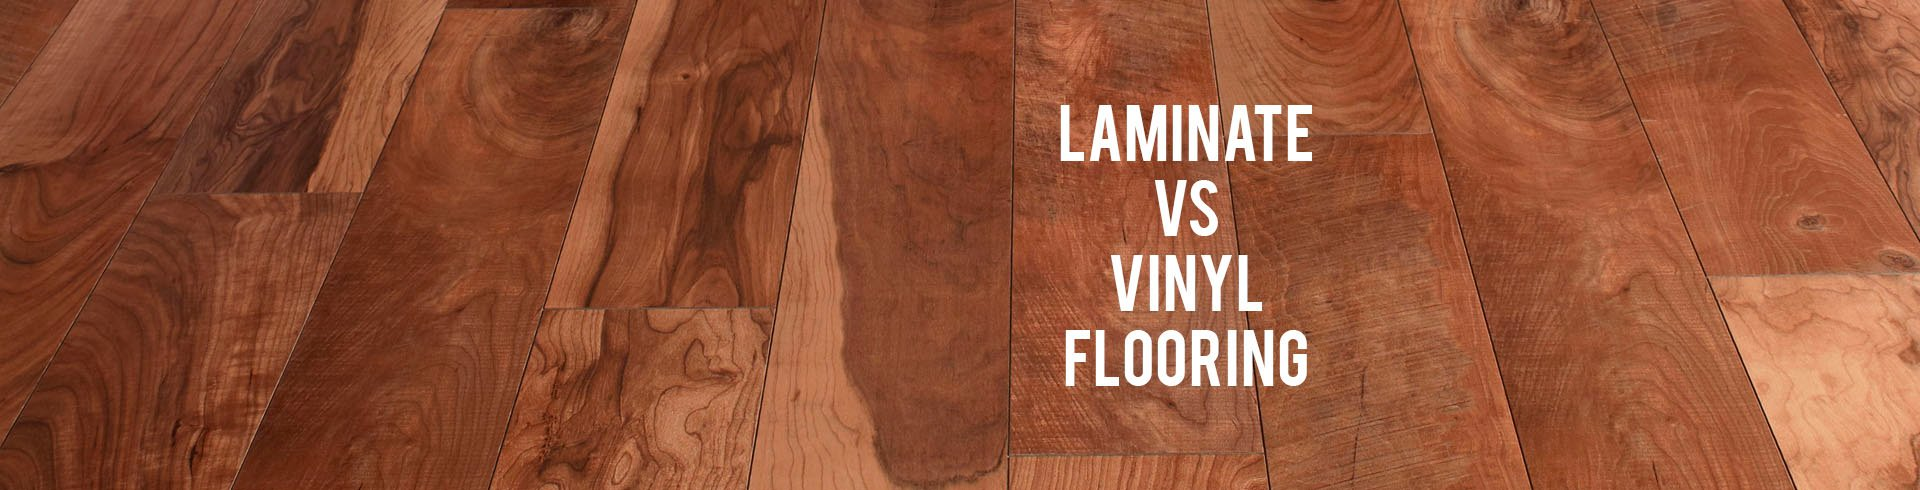 vinyl versus laminate flooring gurus floor. Black Bedroom Furniture Sets. Home Design Ideas